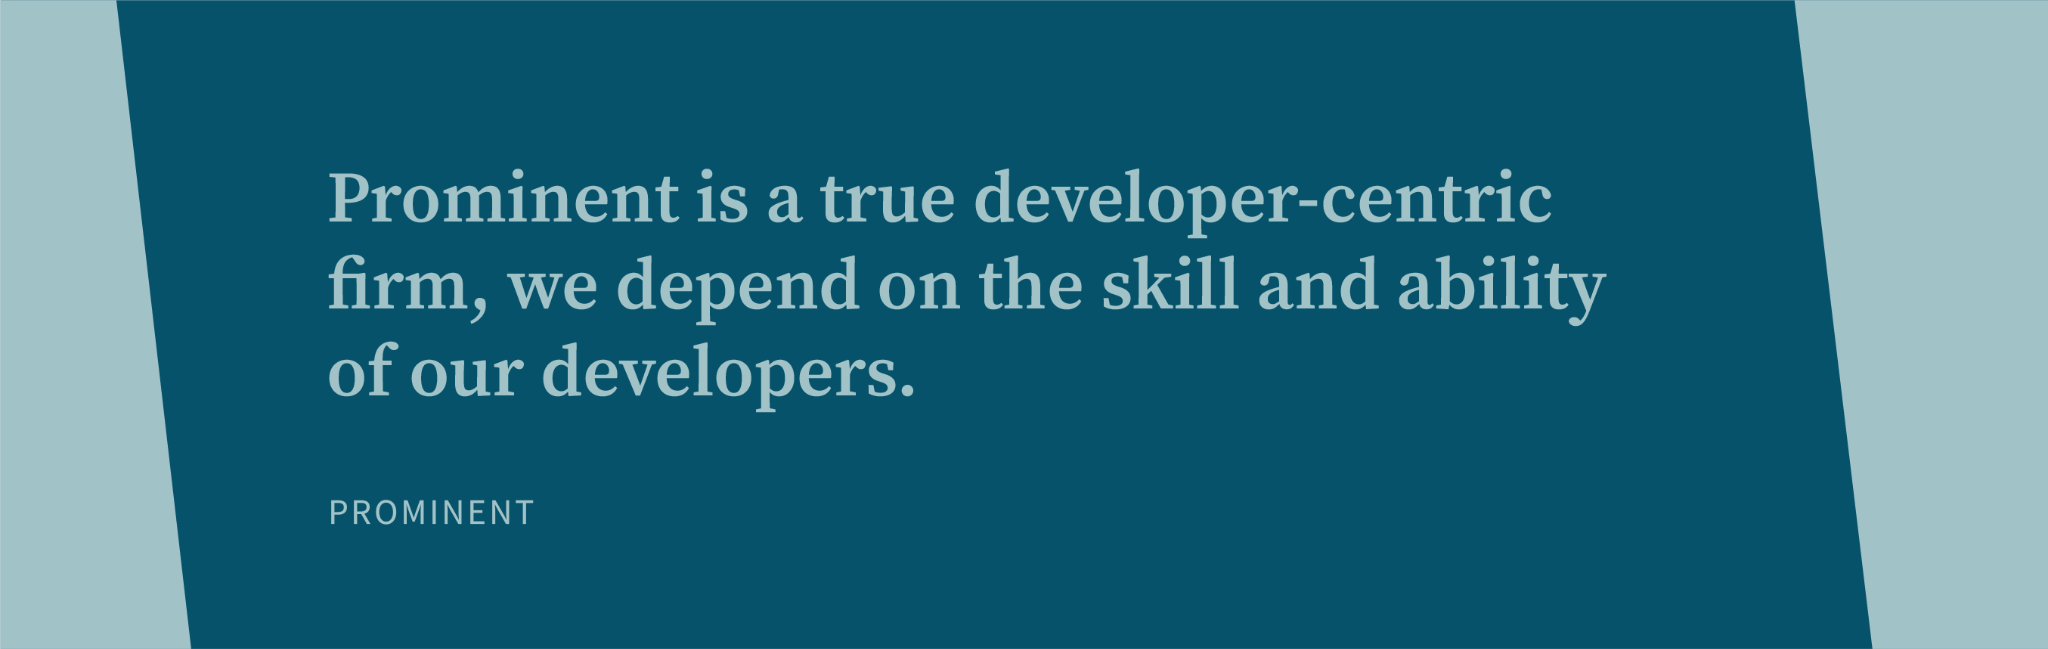 Prominent is a true developer-centric firm, we depend on the skill and ability of our developers.